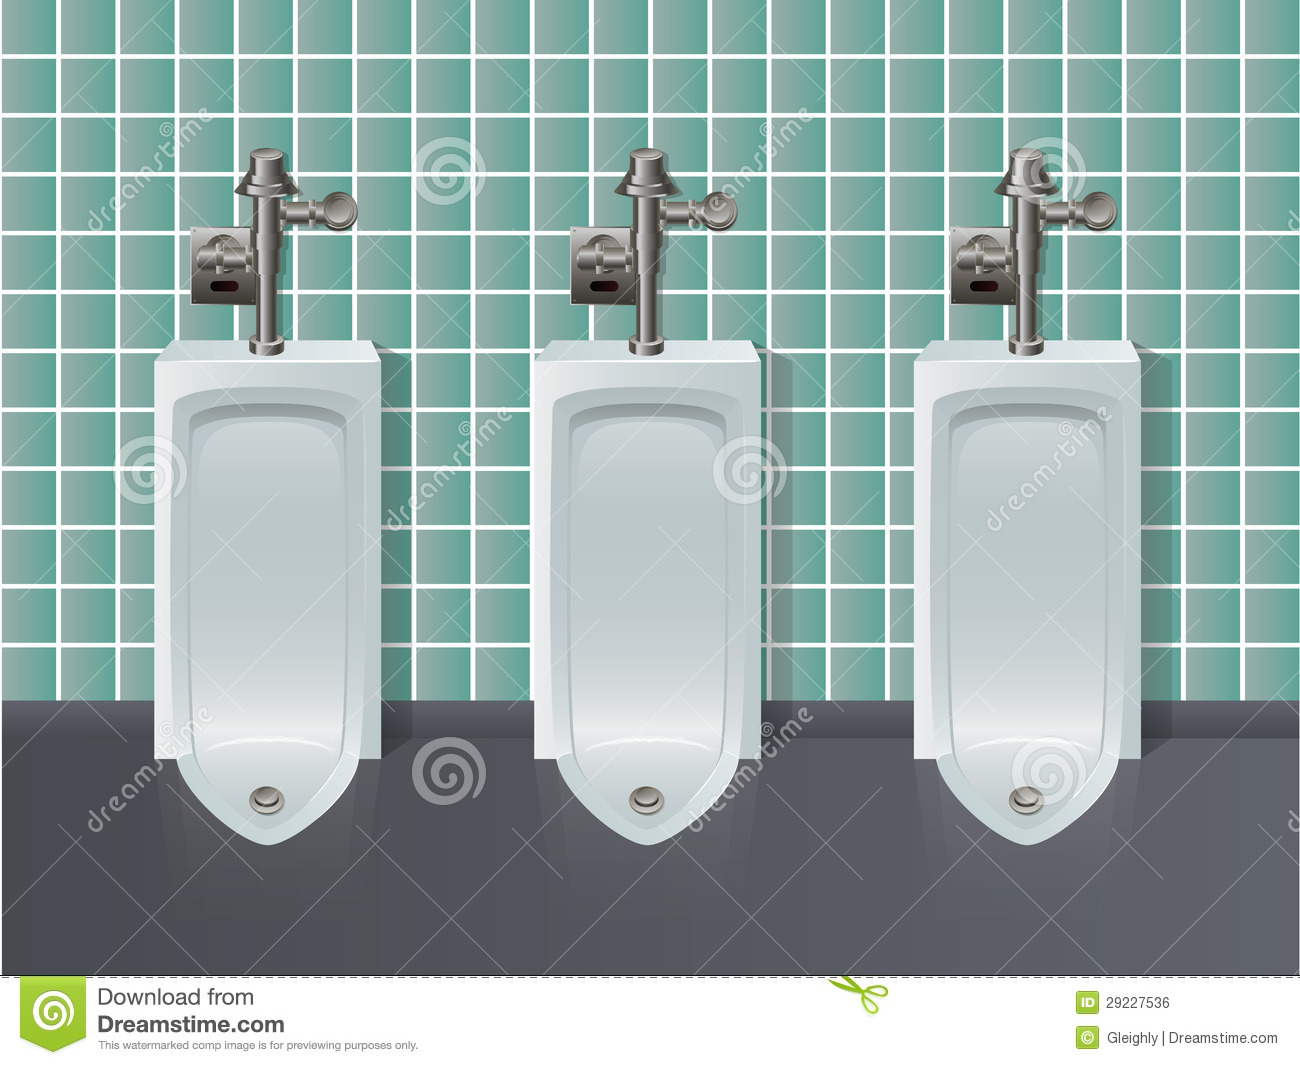 Urinal Illustration Stock Vector Illustration Of